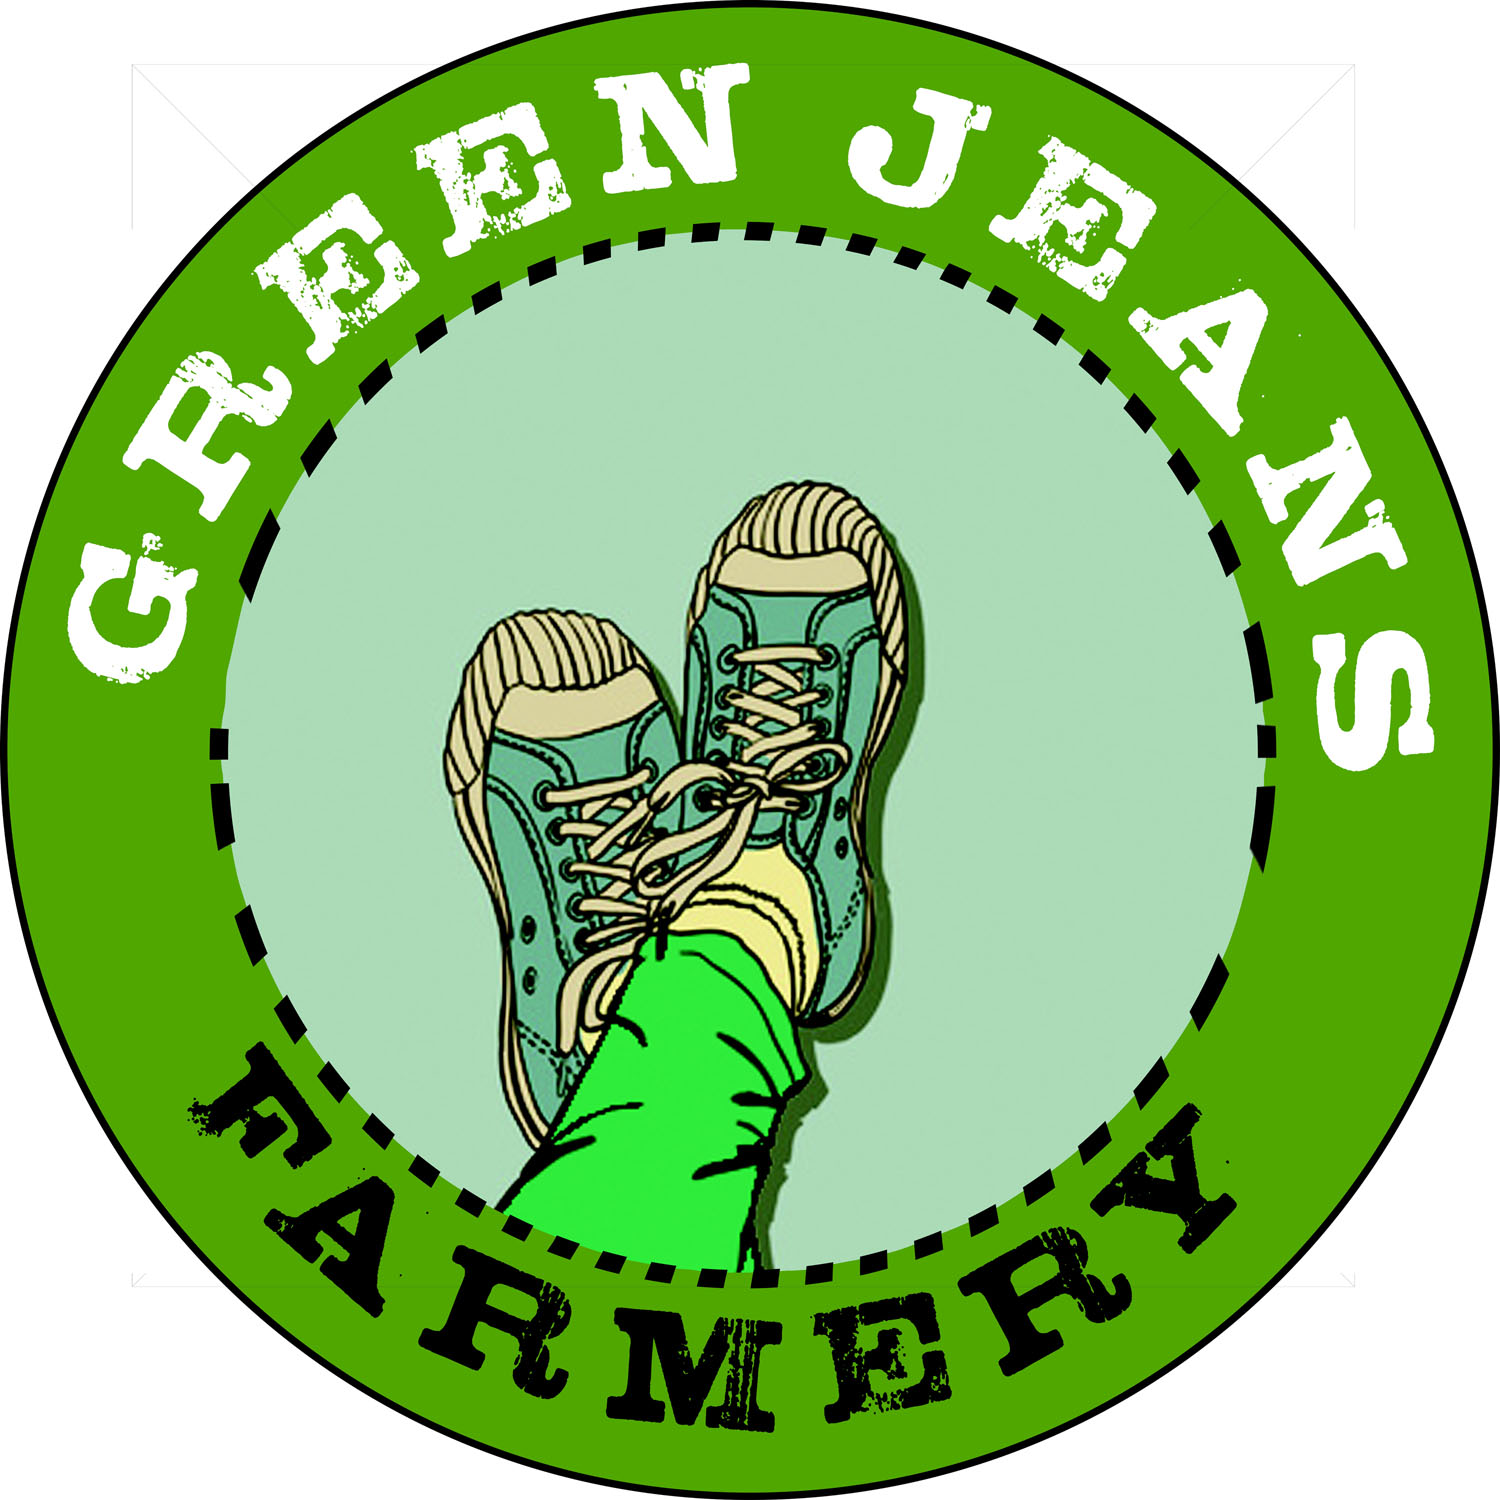 Green Jeans Farmery Albuquerque